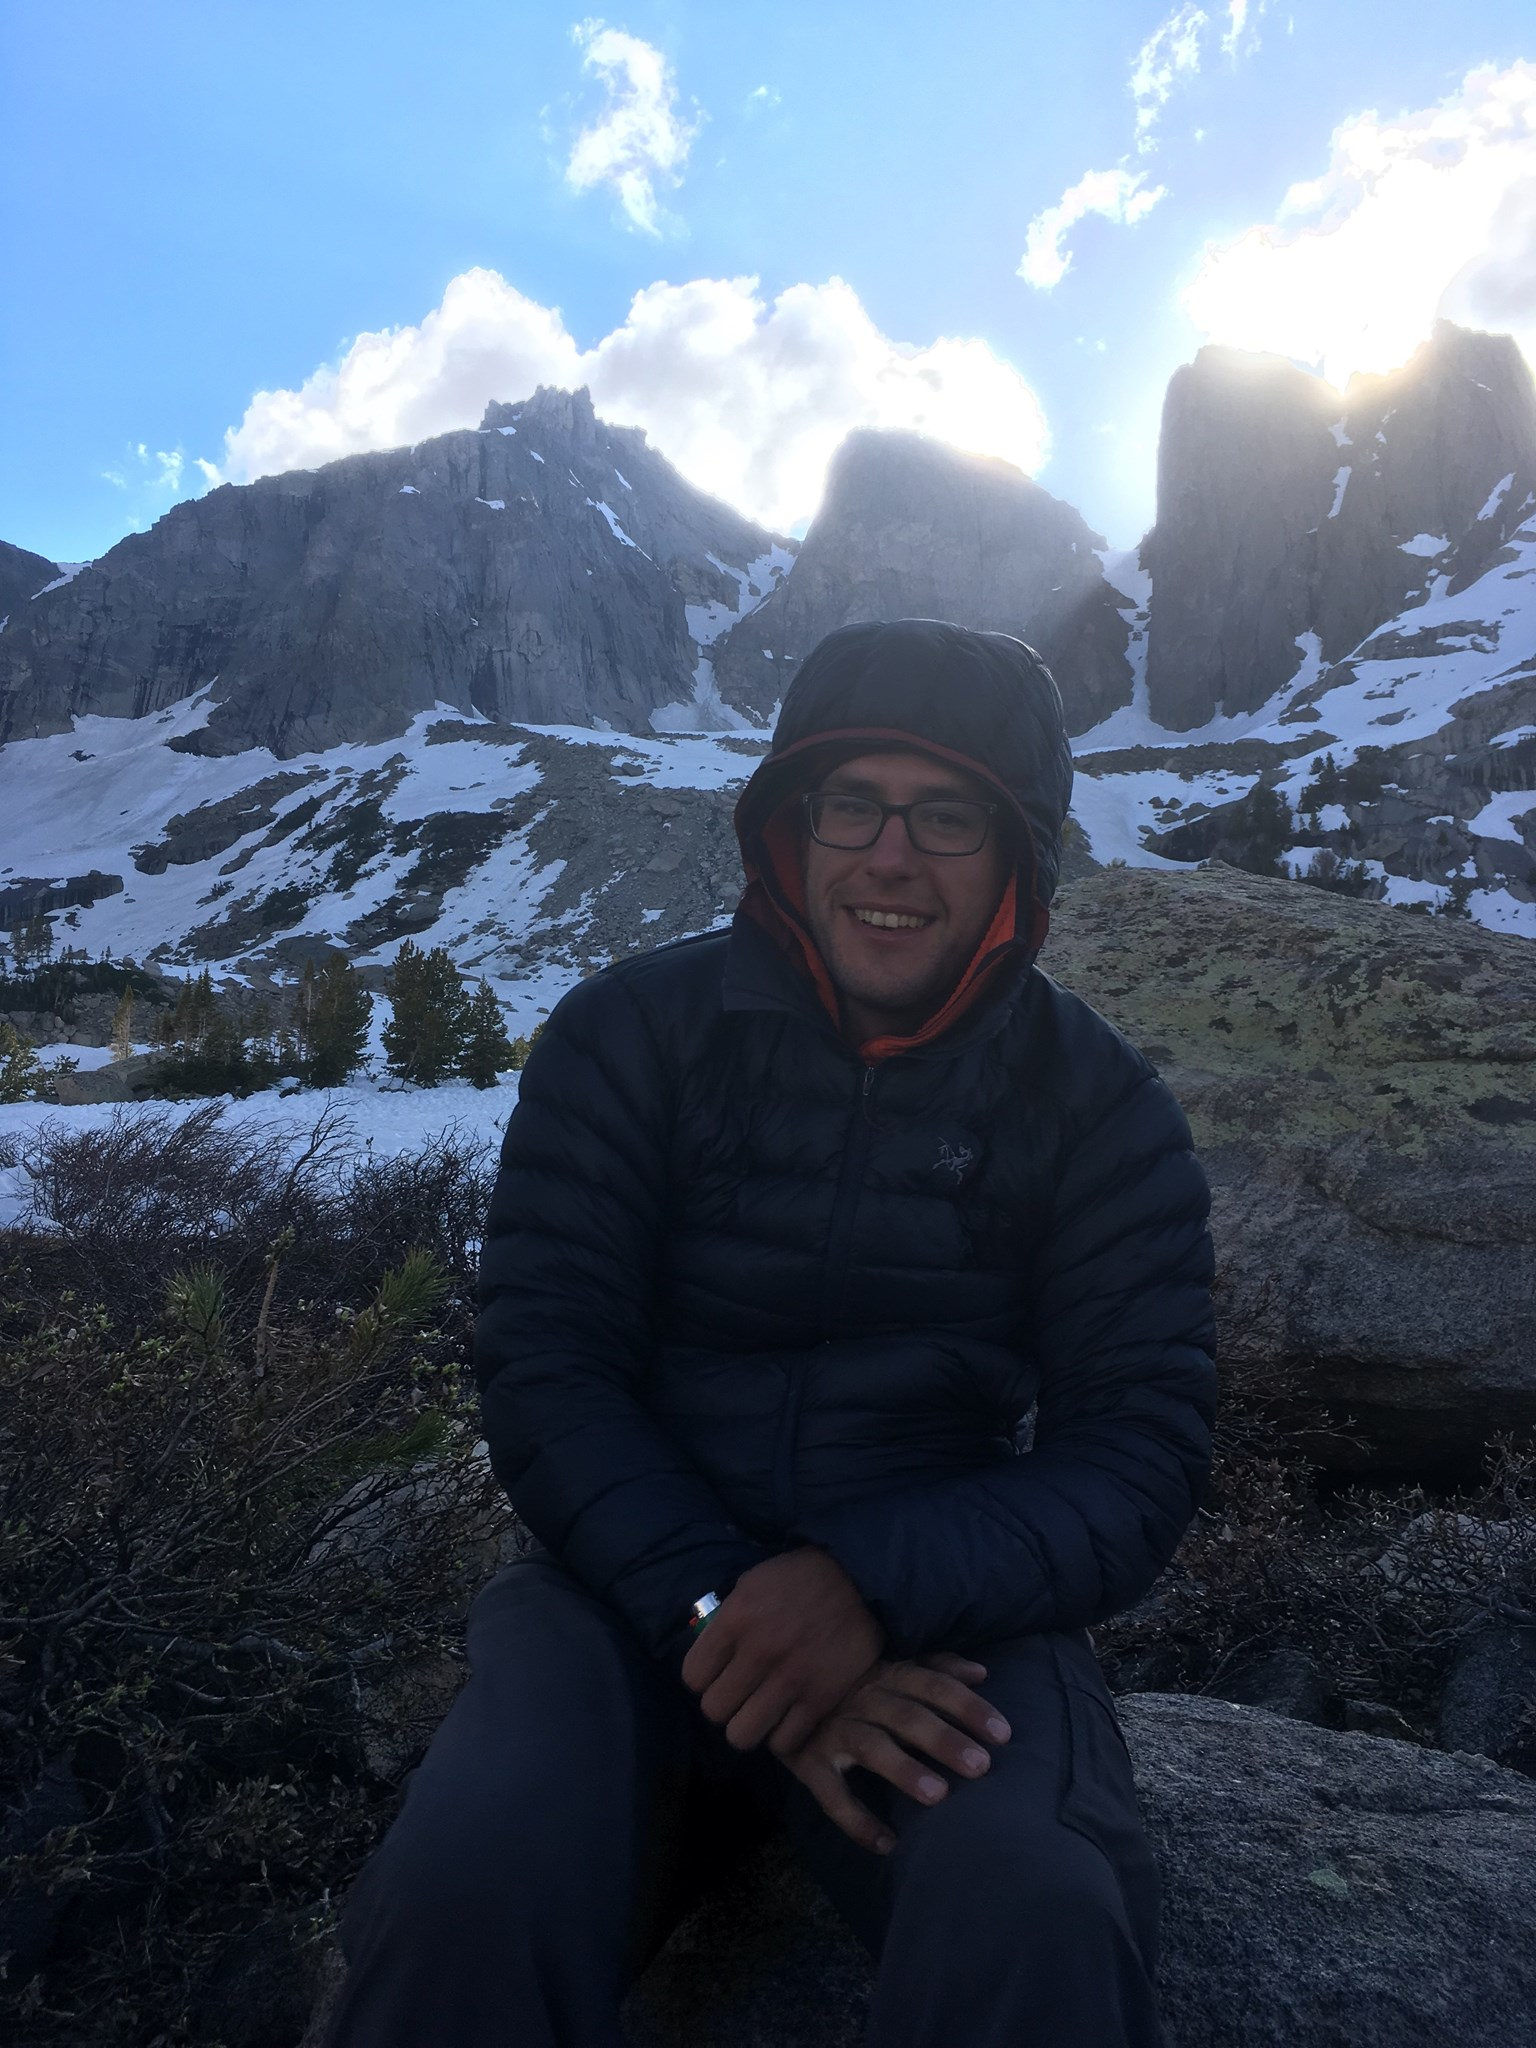 Marco at Cirque of the Towers in WY